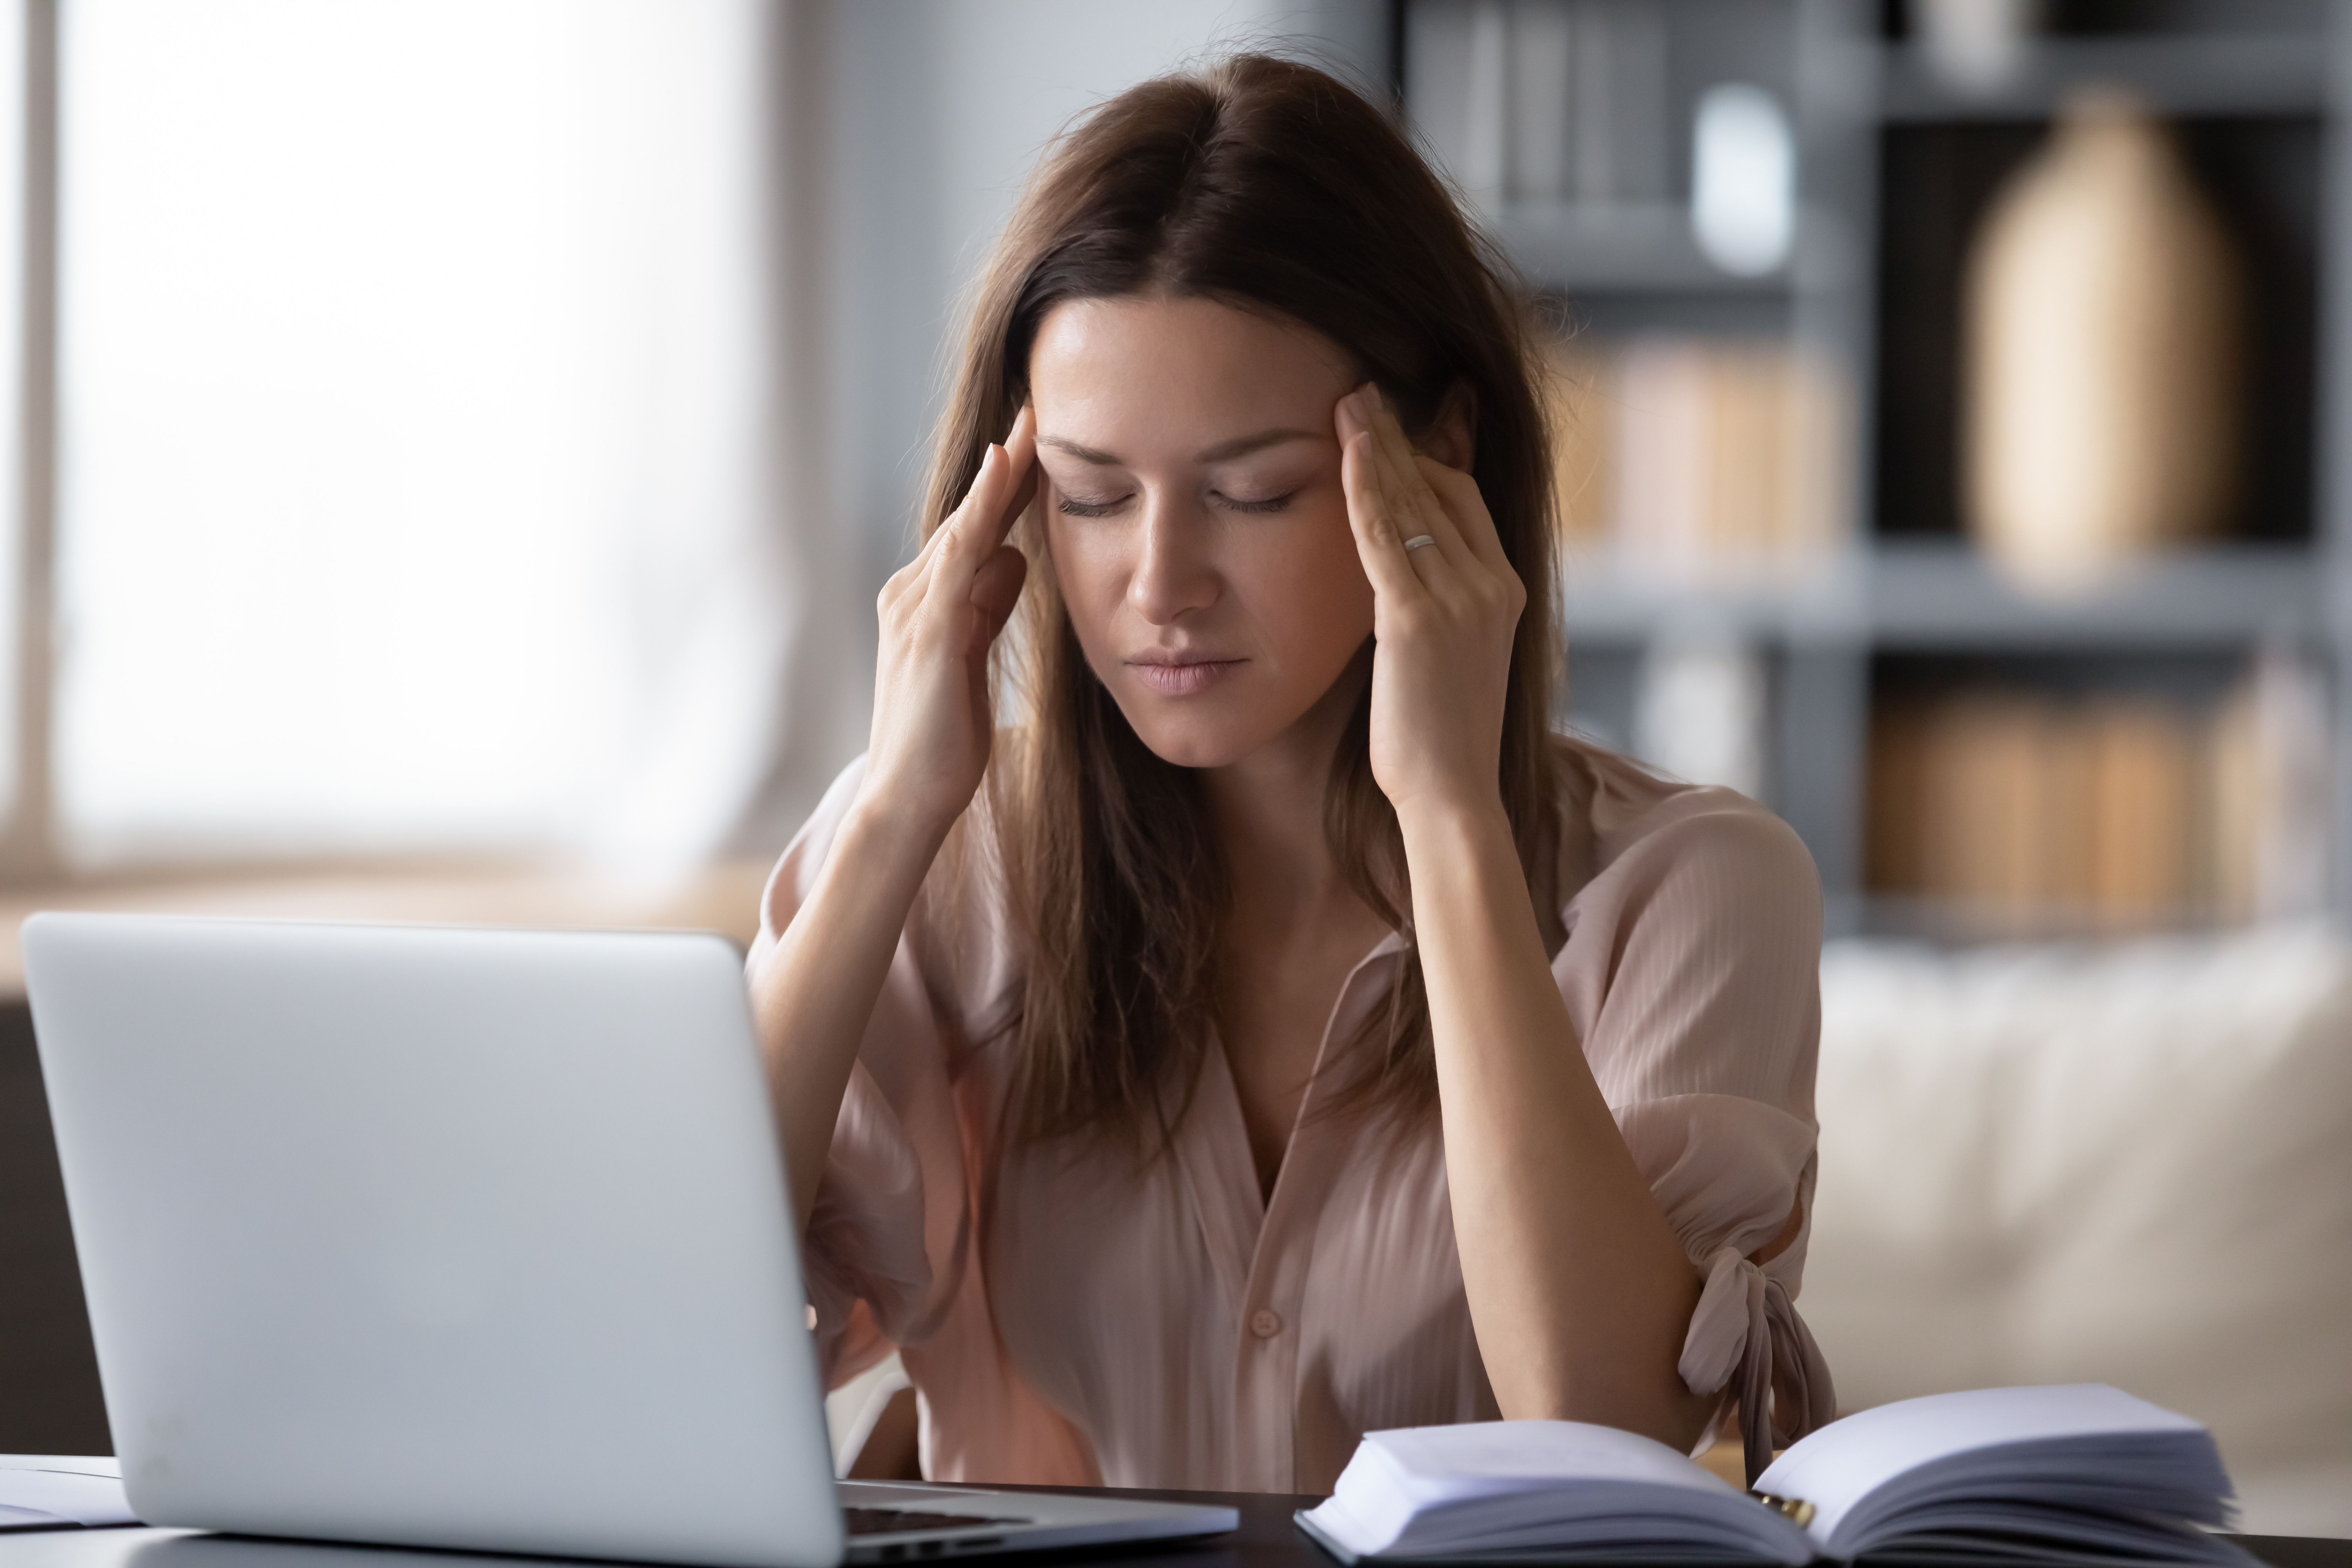 woman with a laptop rubbing her temples